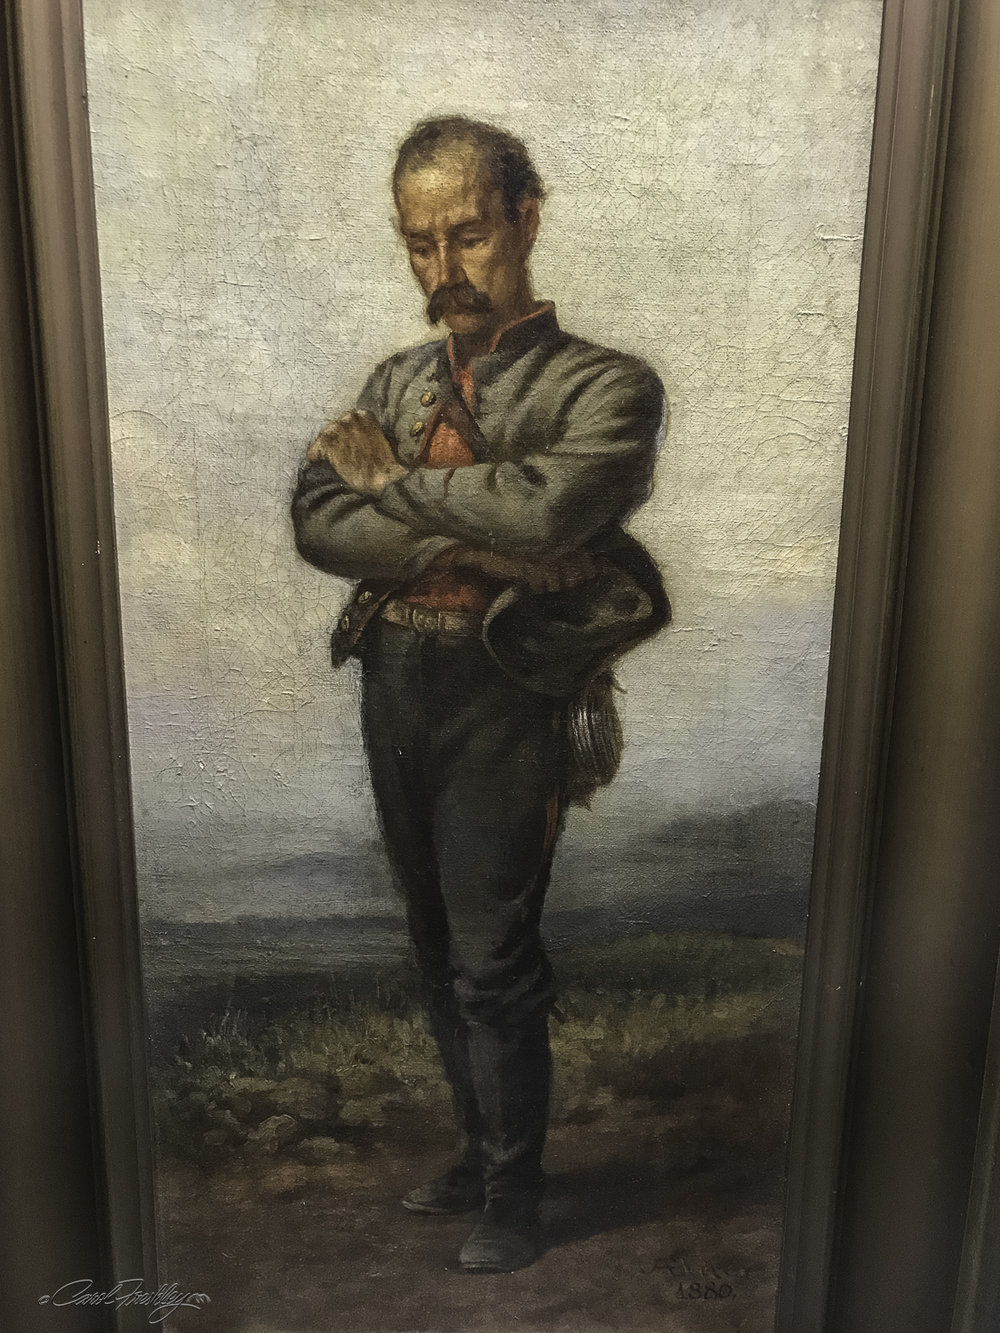 """Appomattox"" by John Elder, an 1880 oil painting signed and dated by the artist.  It is a compelling portrait of a Confederate soldier following the surrender of General Lee.  The soldier is portrayed with arms crossed and head slightly bowed, with downcast eyes - typifying the blend of defiance and sorrow felt after the surrender."